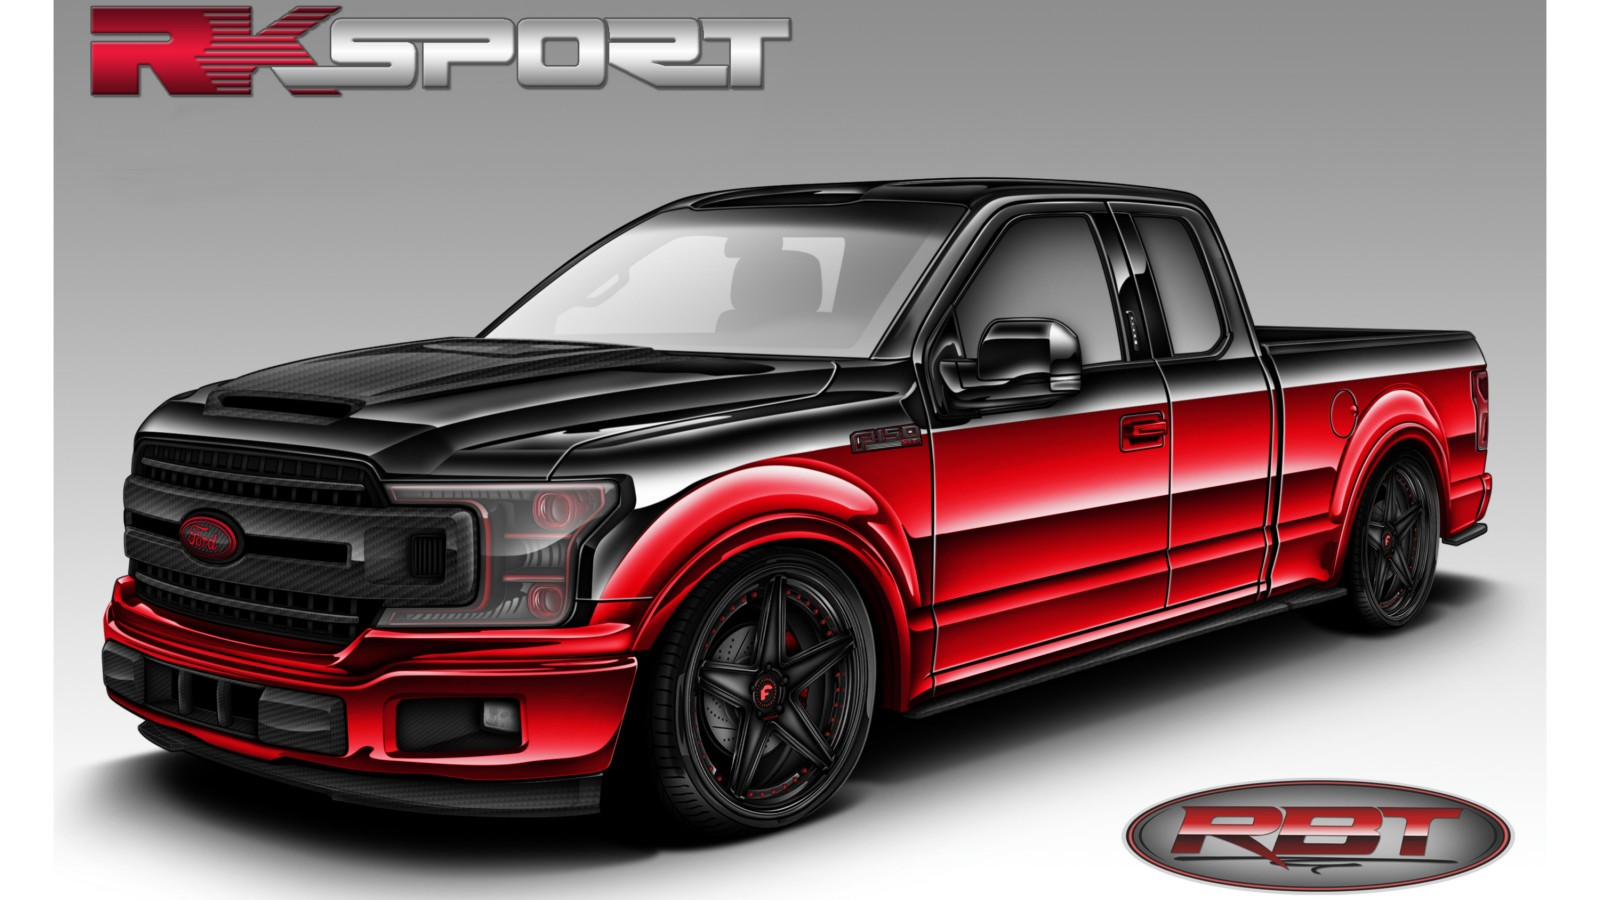 2018 Ford F-150 XLT SuperCab created by RK Sport